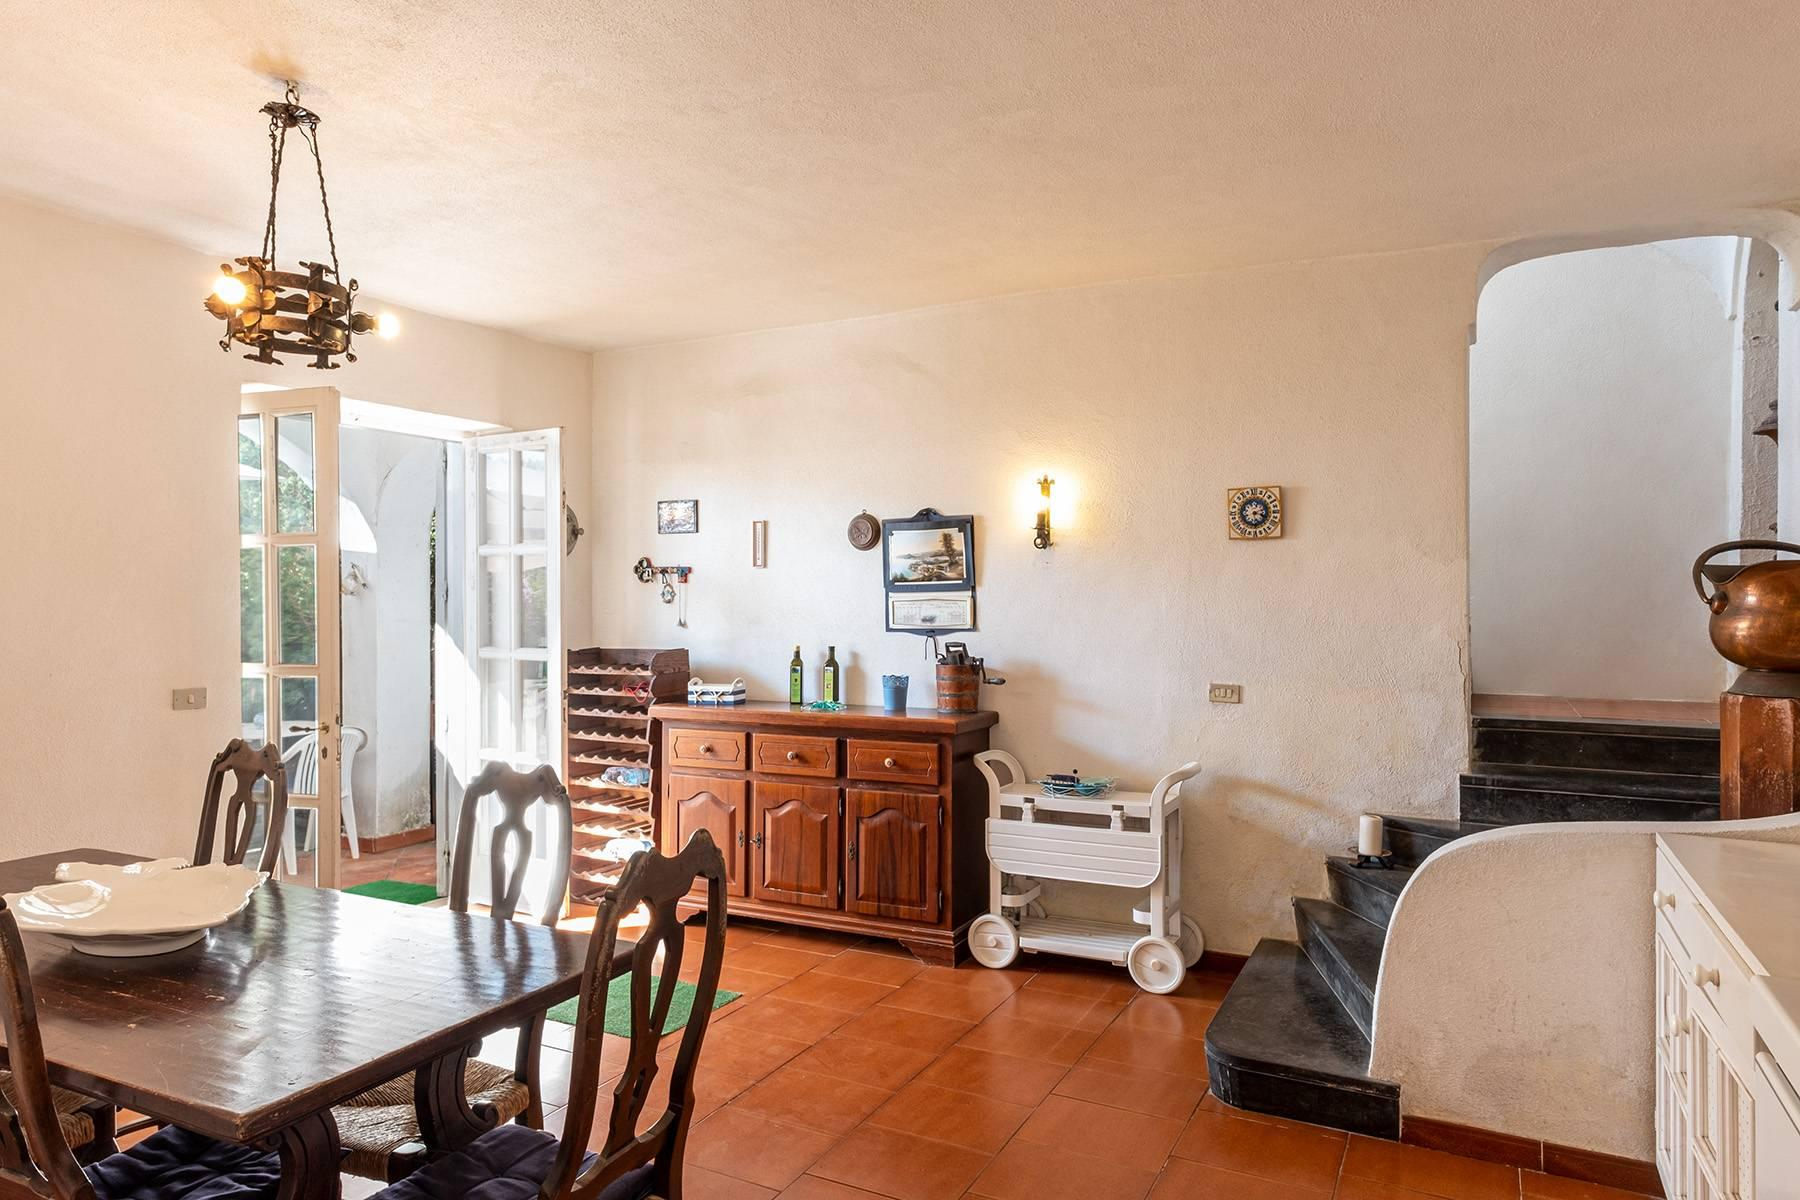 Charming villa with olive grove and swimming pool overlooking the sea - 15